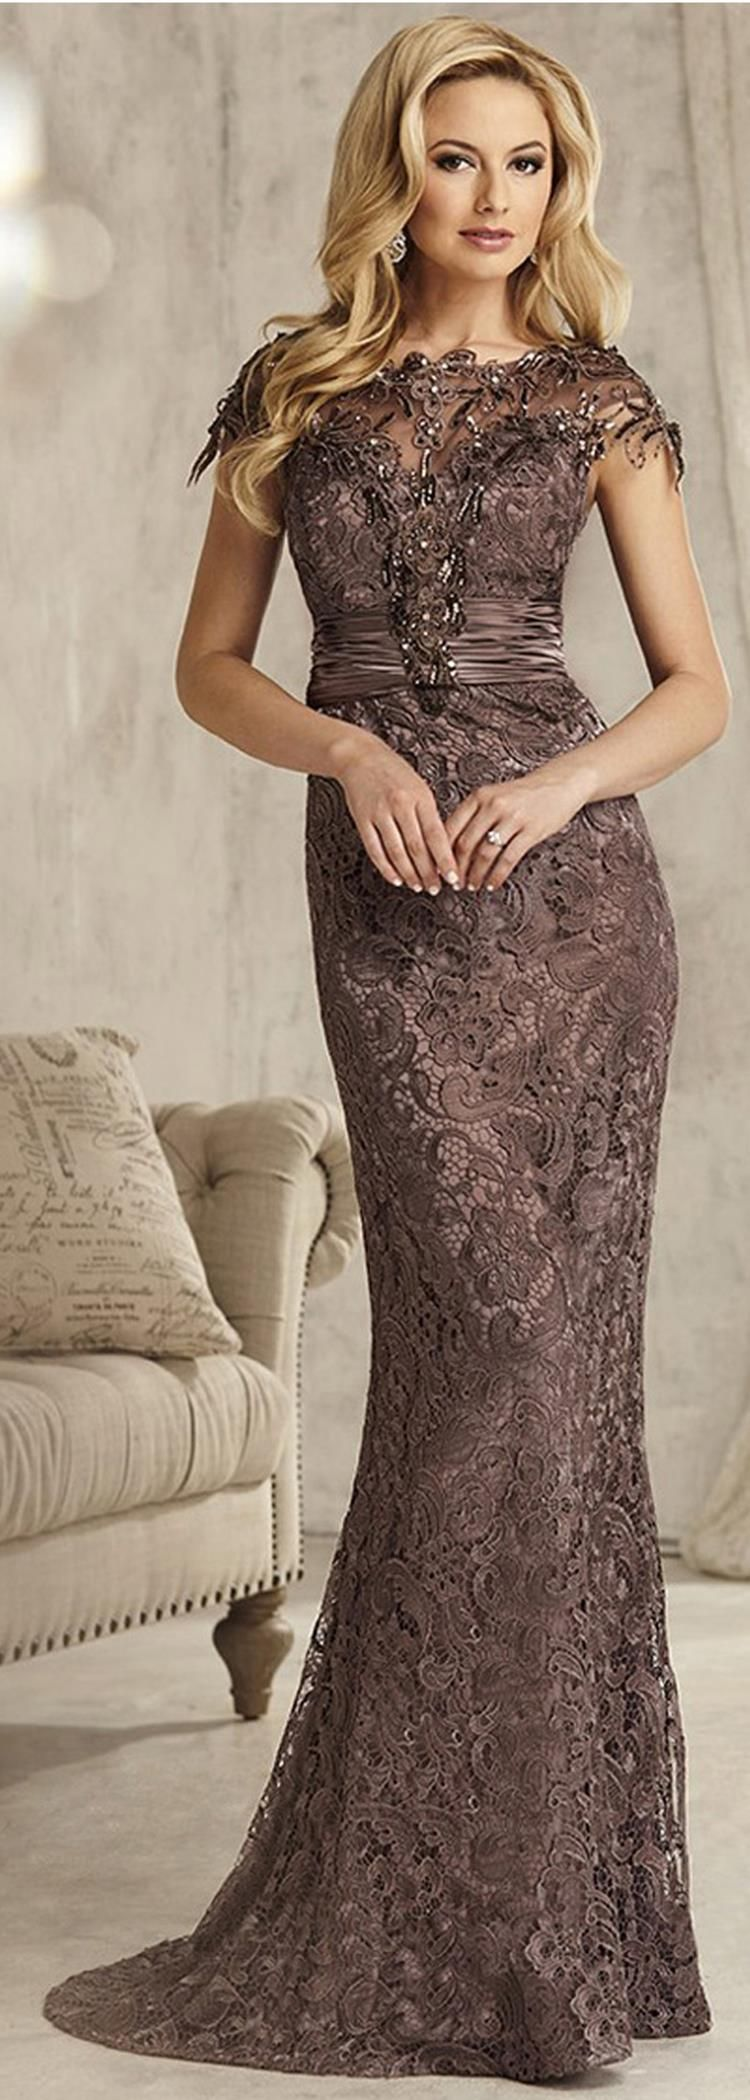 Mother Of The Groom Dresses For Fall Wedding 7 in 2020